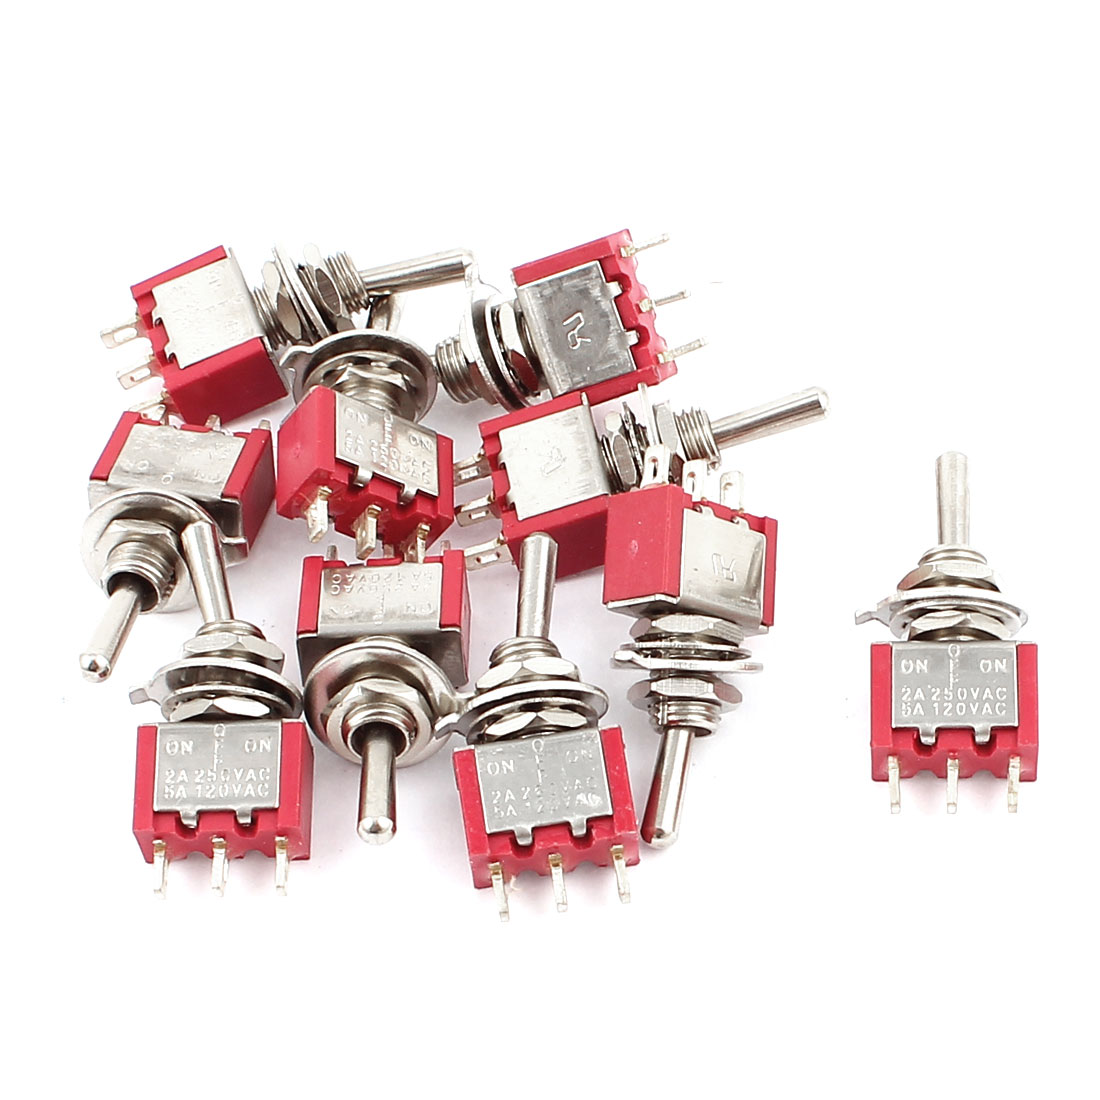 2A250VAC 5A120VAC 10PCS SPDT ON/OFF/ON 3 Pole Electric Toggle Switch Red 6MM